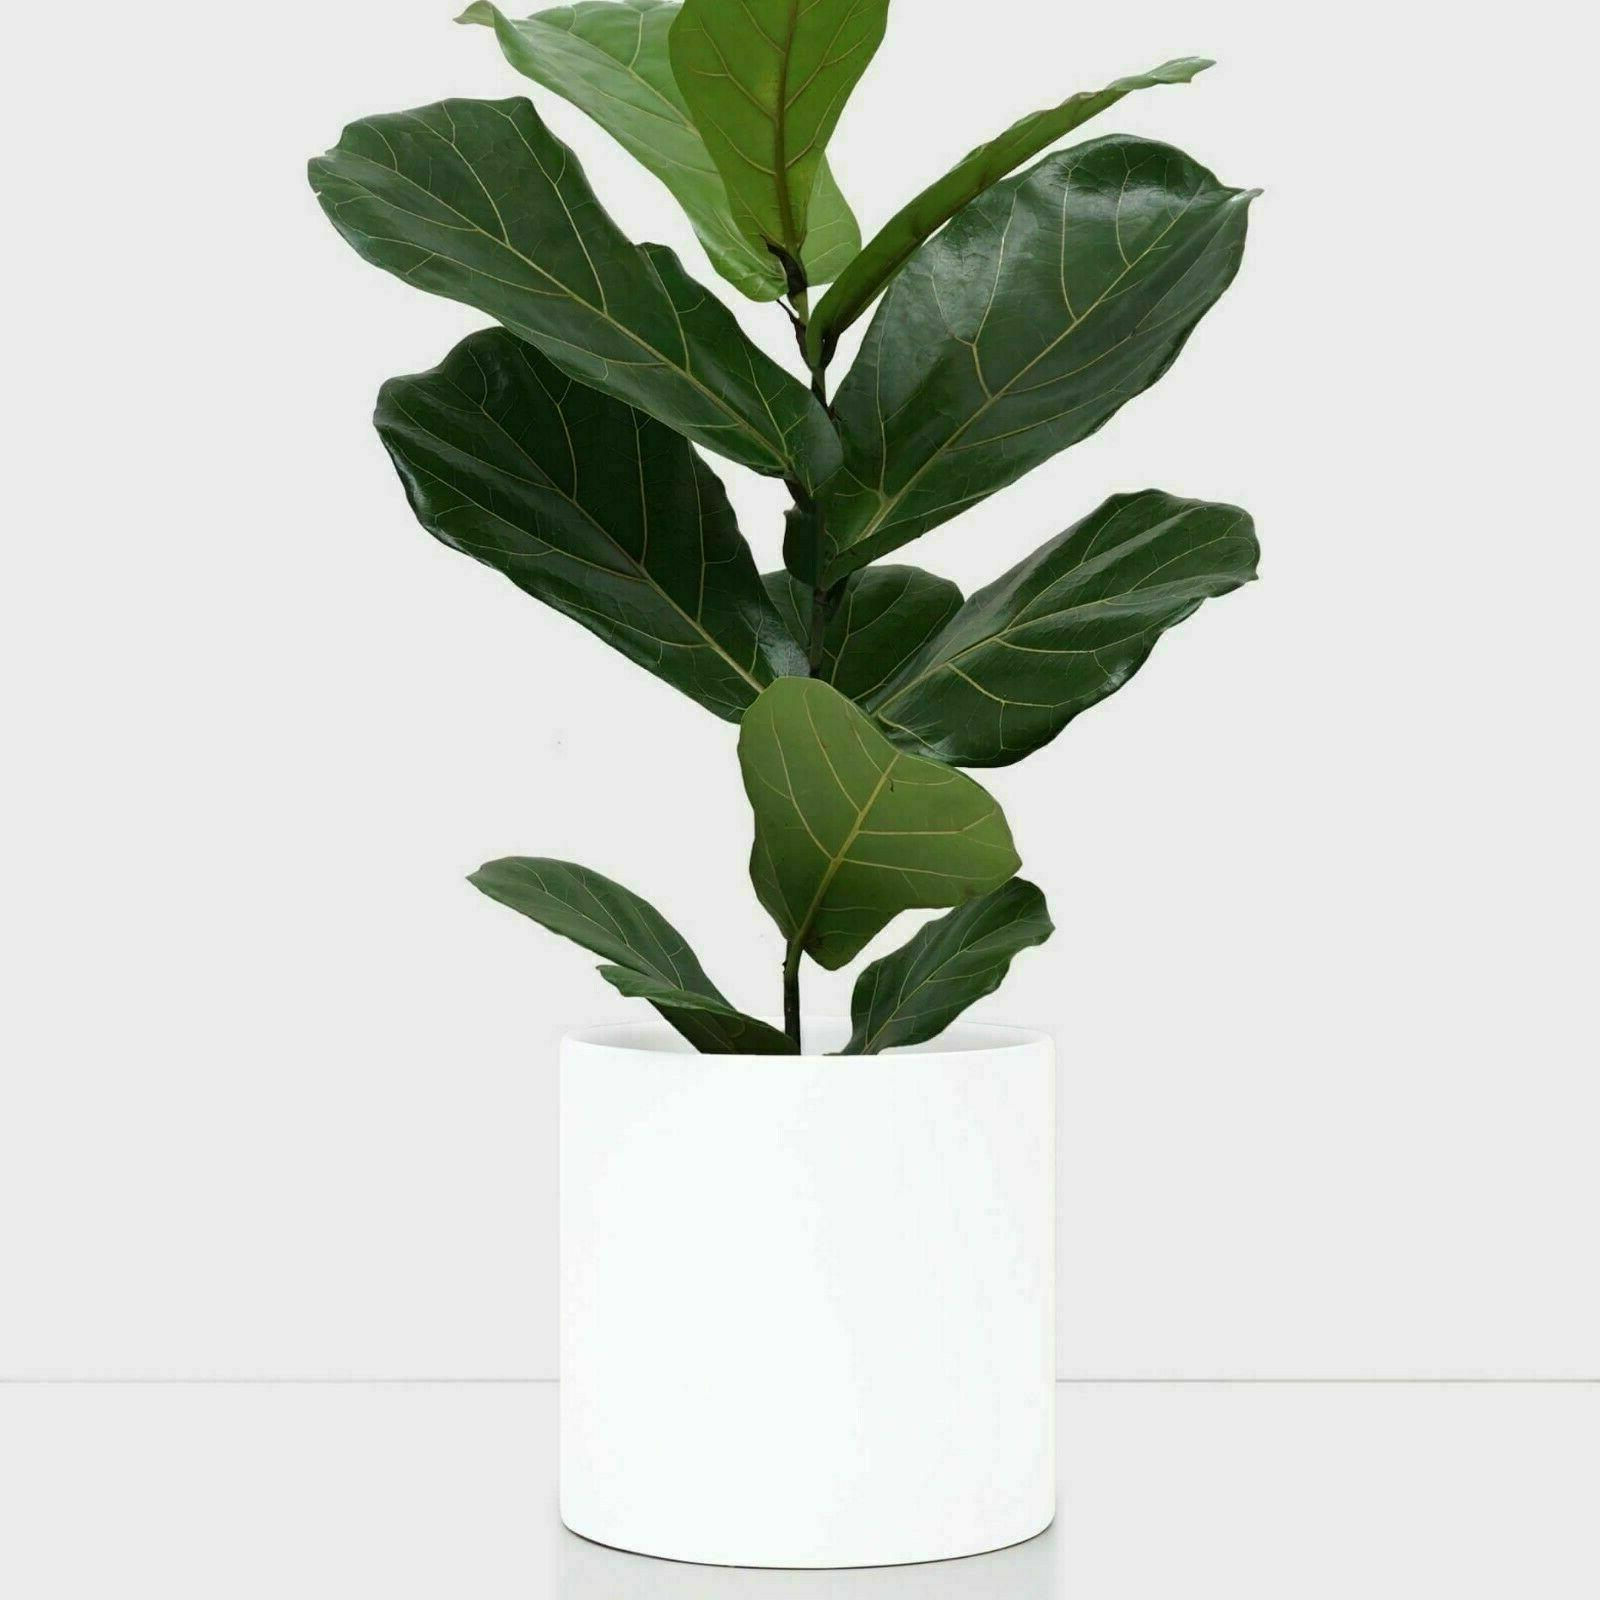 White Ceramic Plant Pot Cylinder Planter Indoor/Outdoor 5